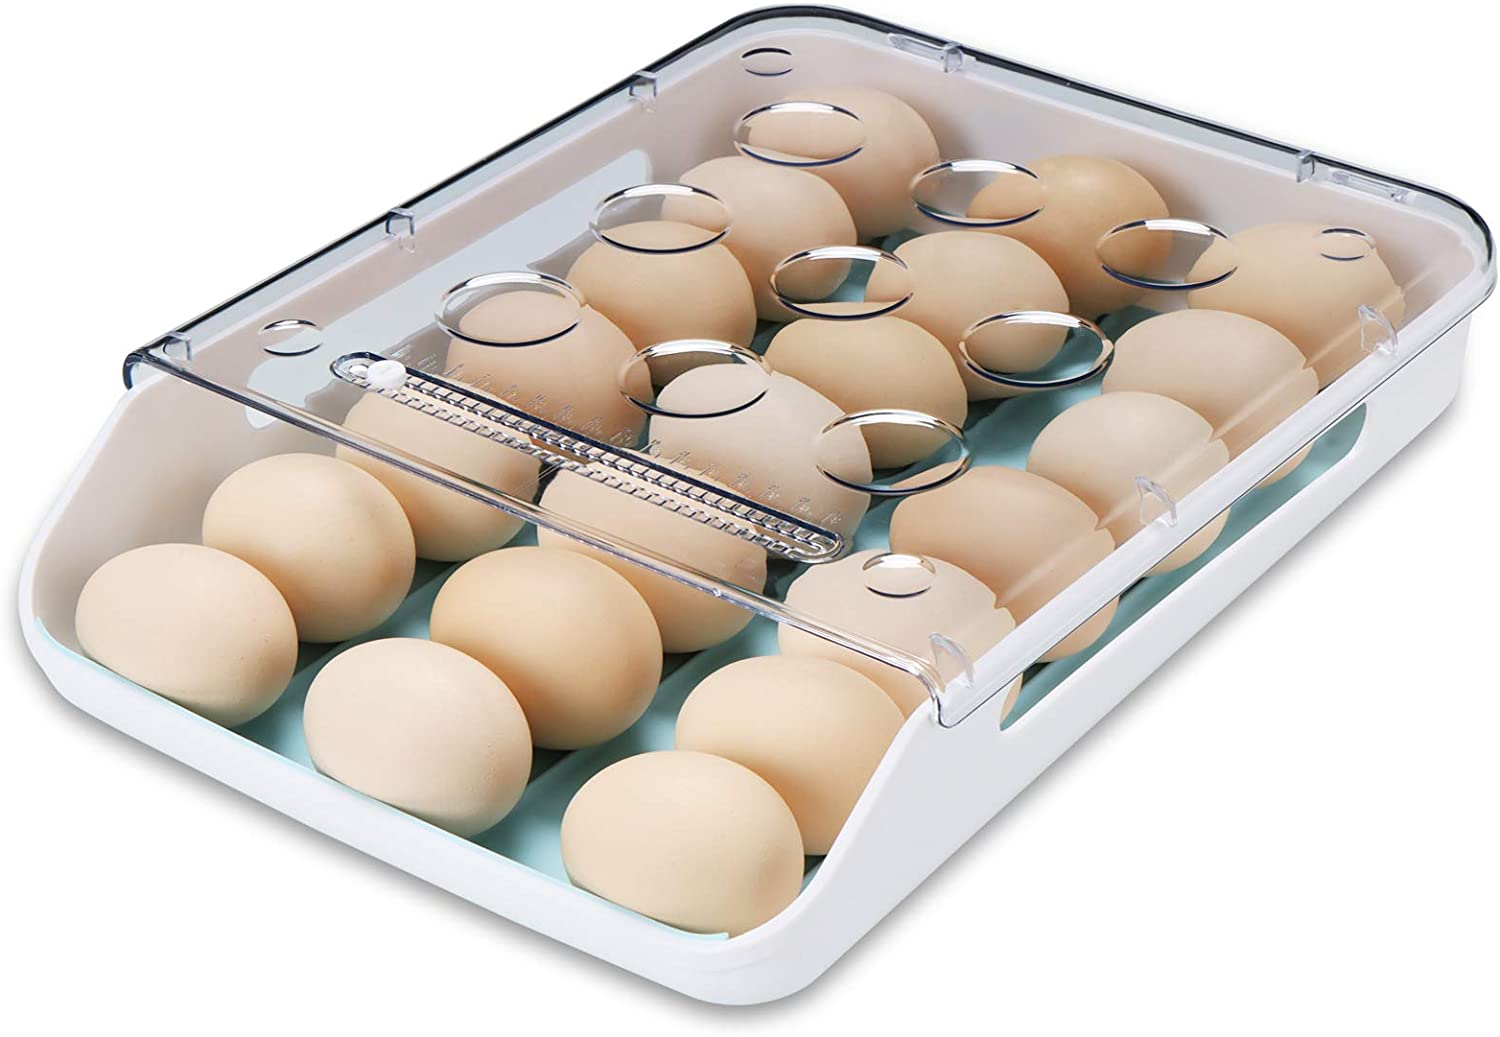 Qmpro Egg Holder Auto Scrolling Down for Refrigerator, Smart Stackable Antislip Deviled Egg Tray Food Container with Lid and Handle,Clear Plastic 21 Eggs (Blue Groove)